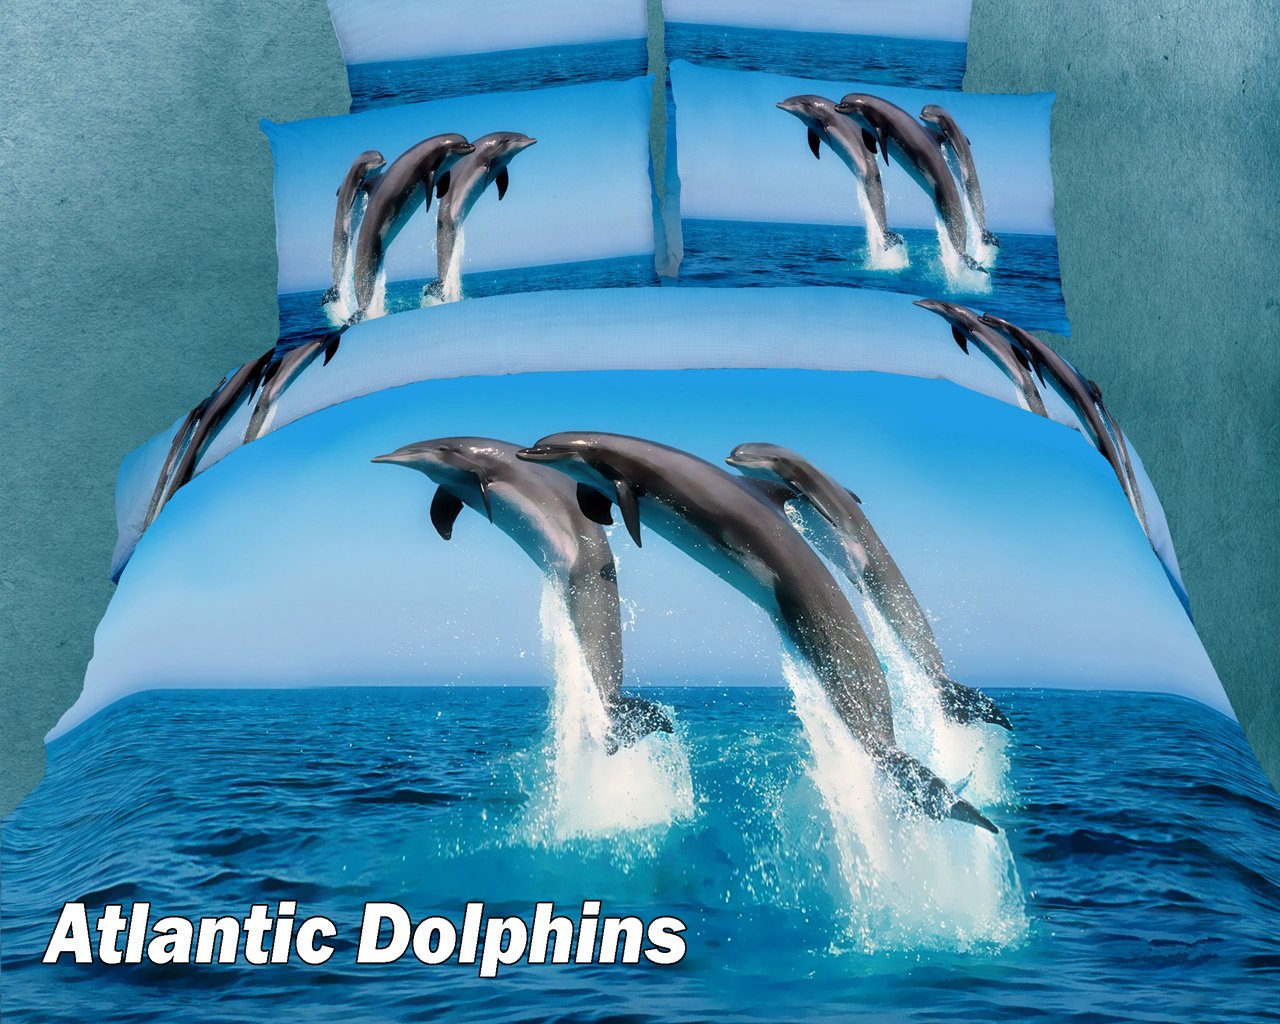 Atlantic Dolphins, Animal Themed Bedding, 6 PCs Full or Queen Size Egyptian Cotton Duvet Cover Set in Gift Box by Dolce Mela Fine Linens Bed in a Box, Bridal Shower, Birthday, Housewarming or Anniversary Gift Idea, DM425Q